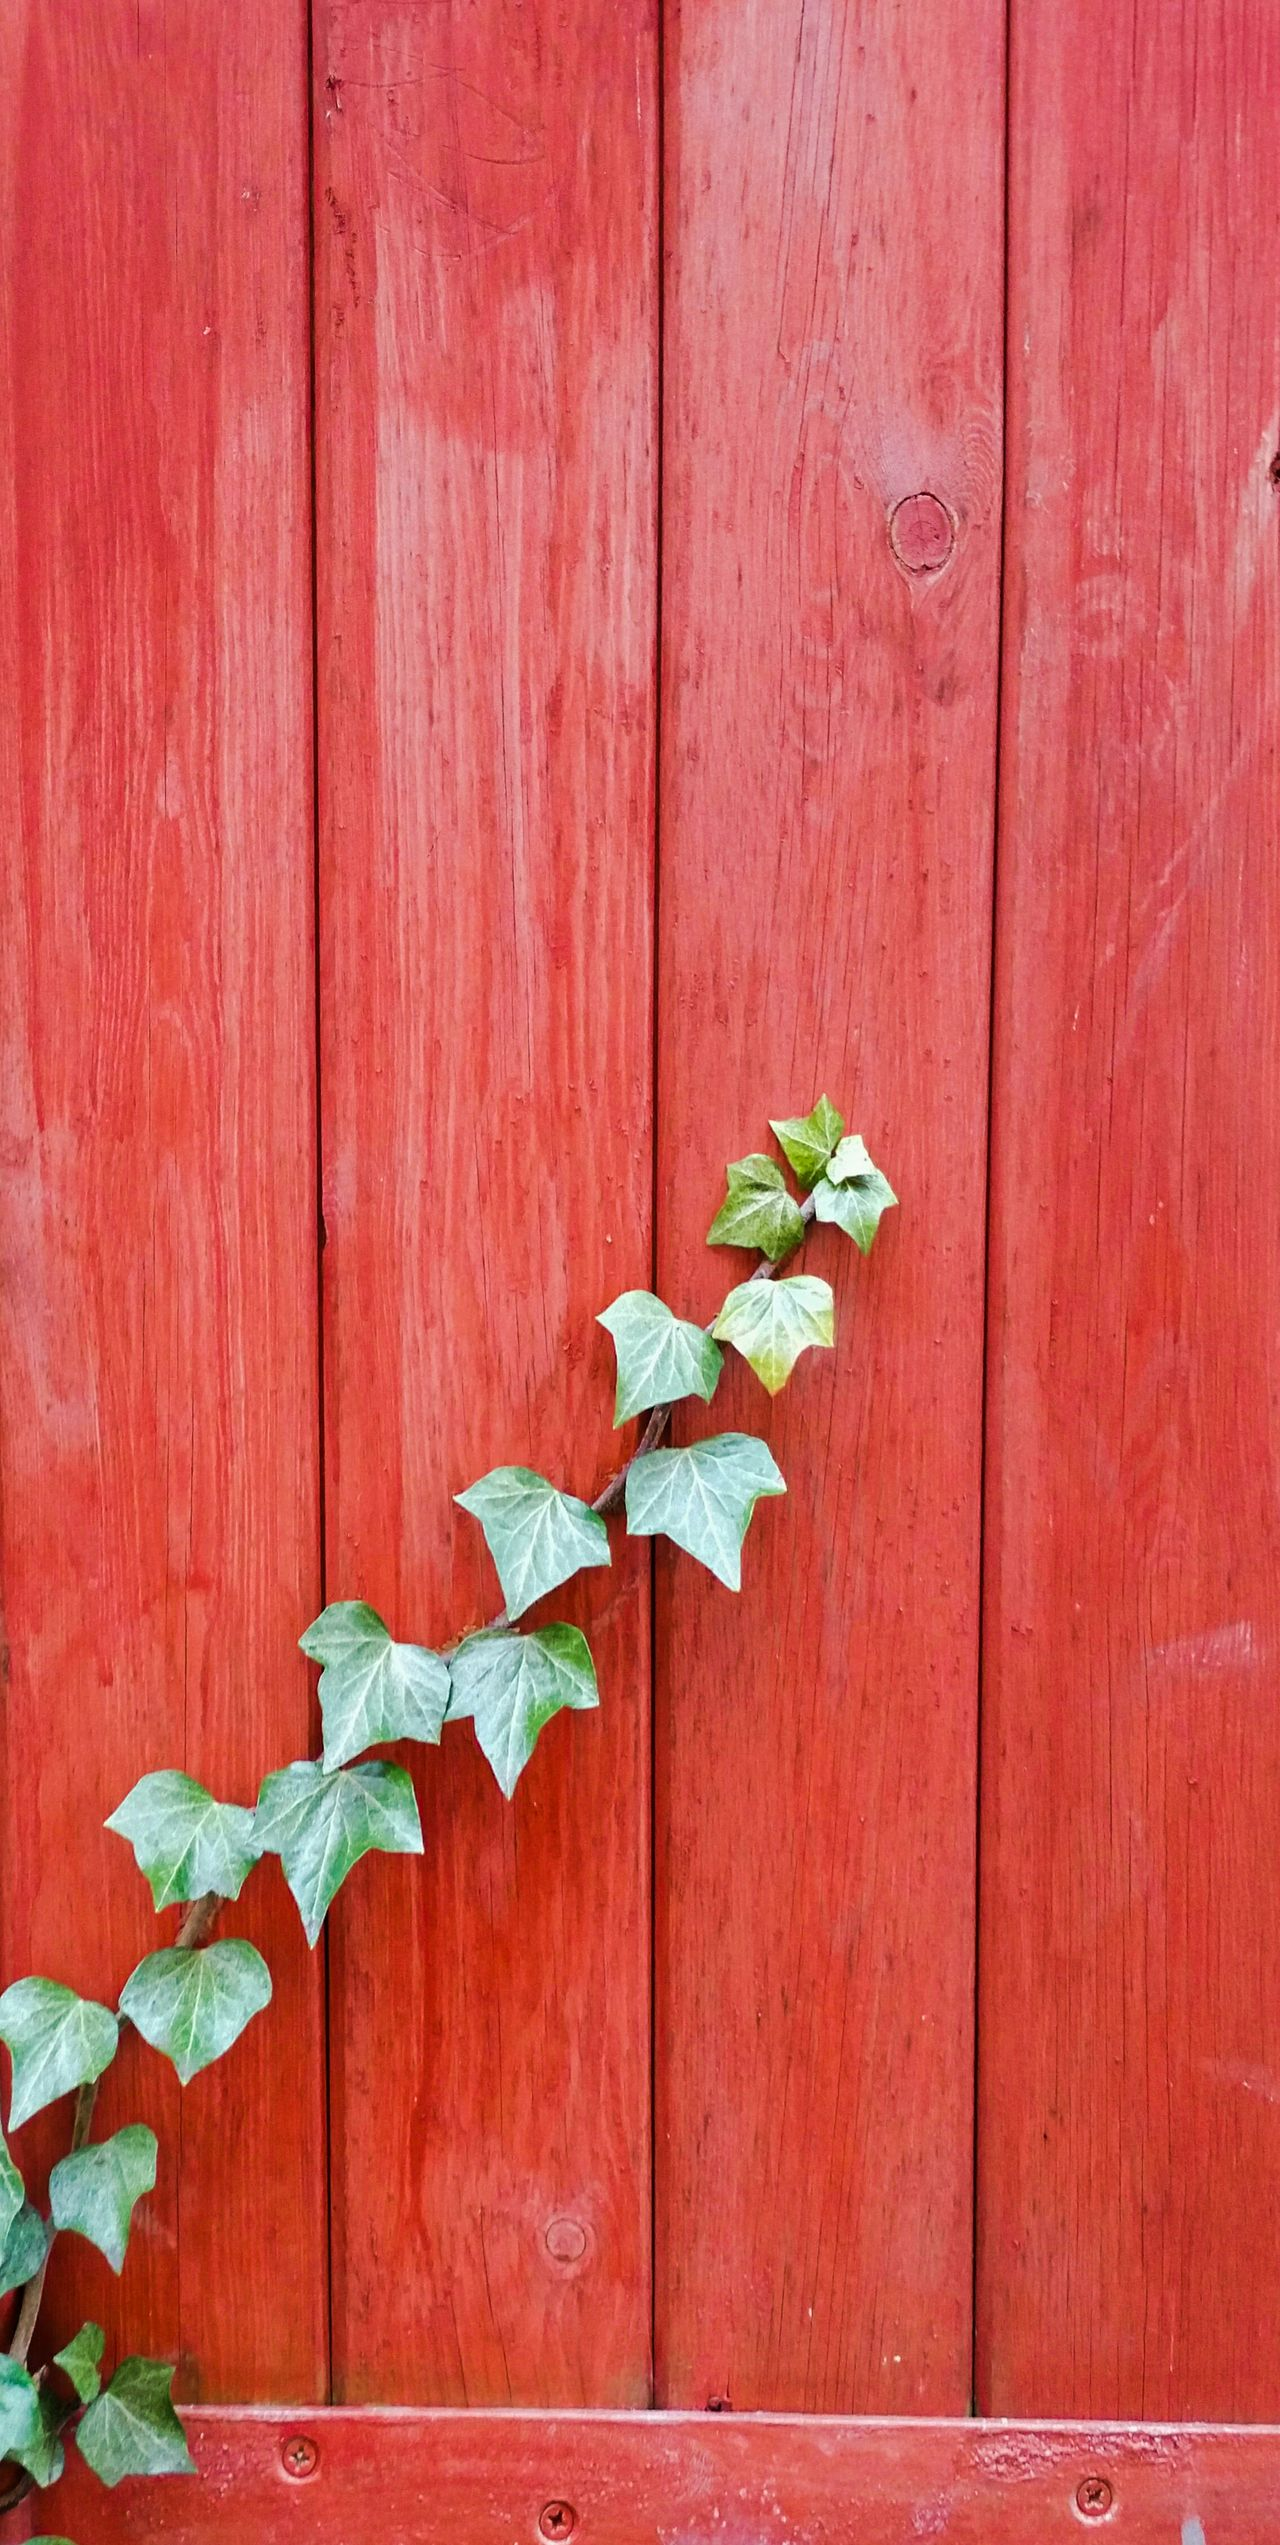 Wood - Material No People Red Outdoors Close-up Day Nature Architecture Ivy Leaves Plant Fence Gate Climbing Growing Britain Backgrounds Desktop Planks Paint Green